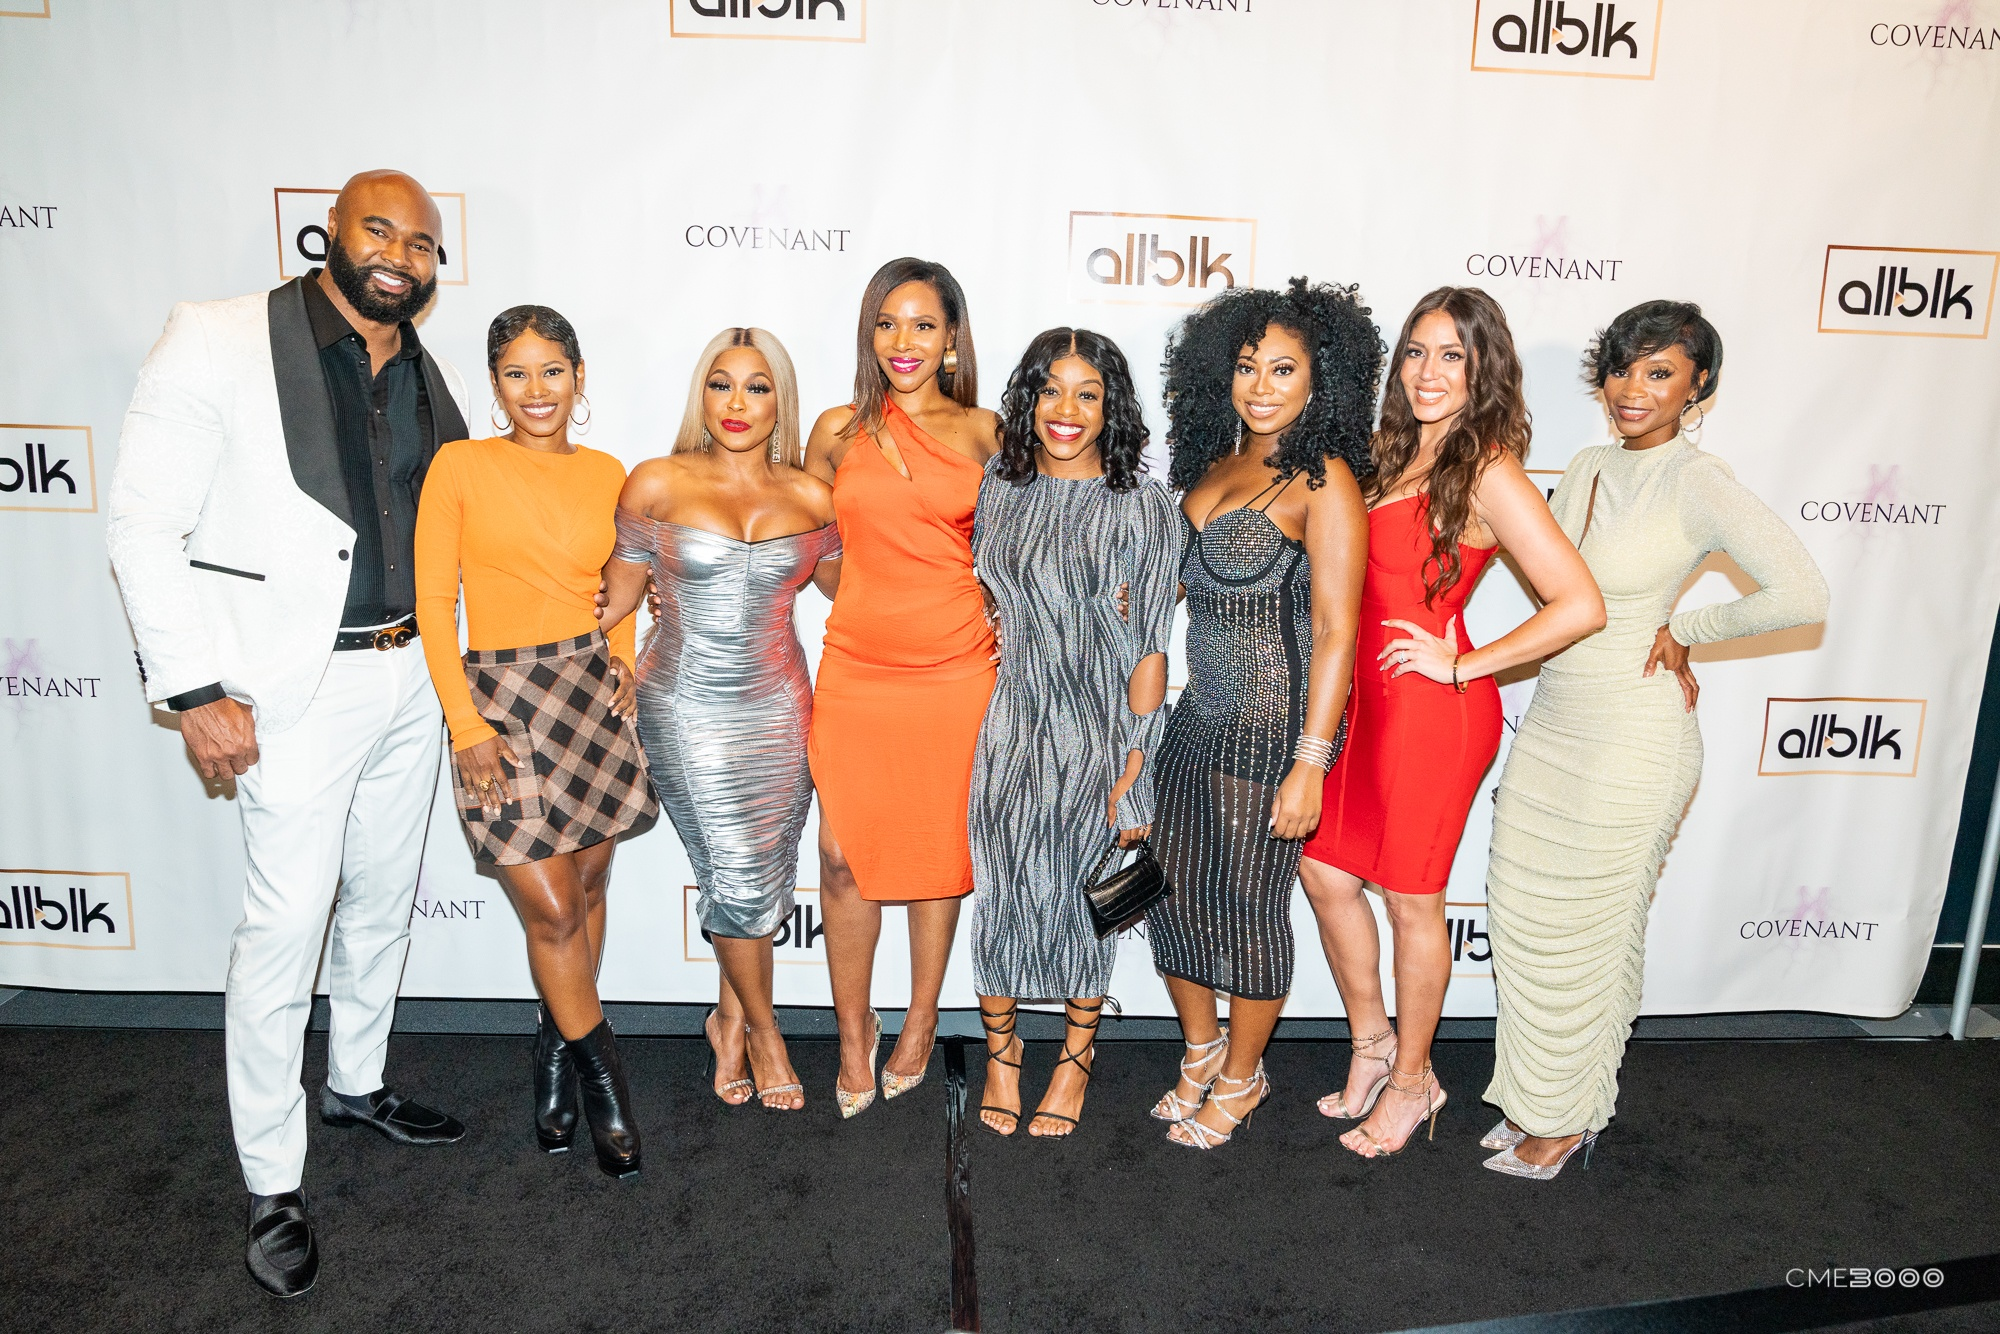 Red Carpet Pics: Phaedra Parks, Remy Ma & More At 'COVENANT' Screening In ATL